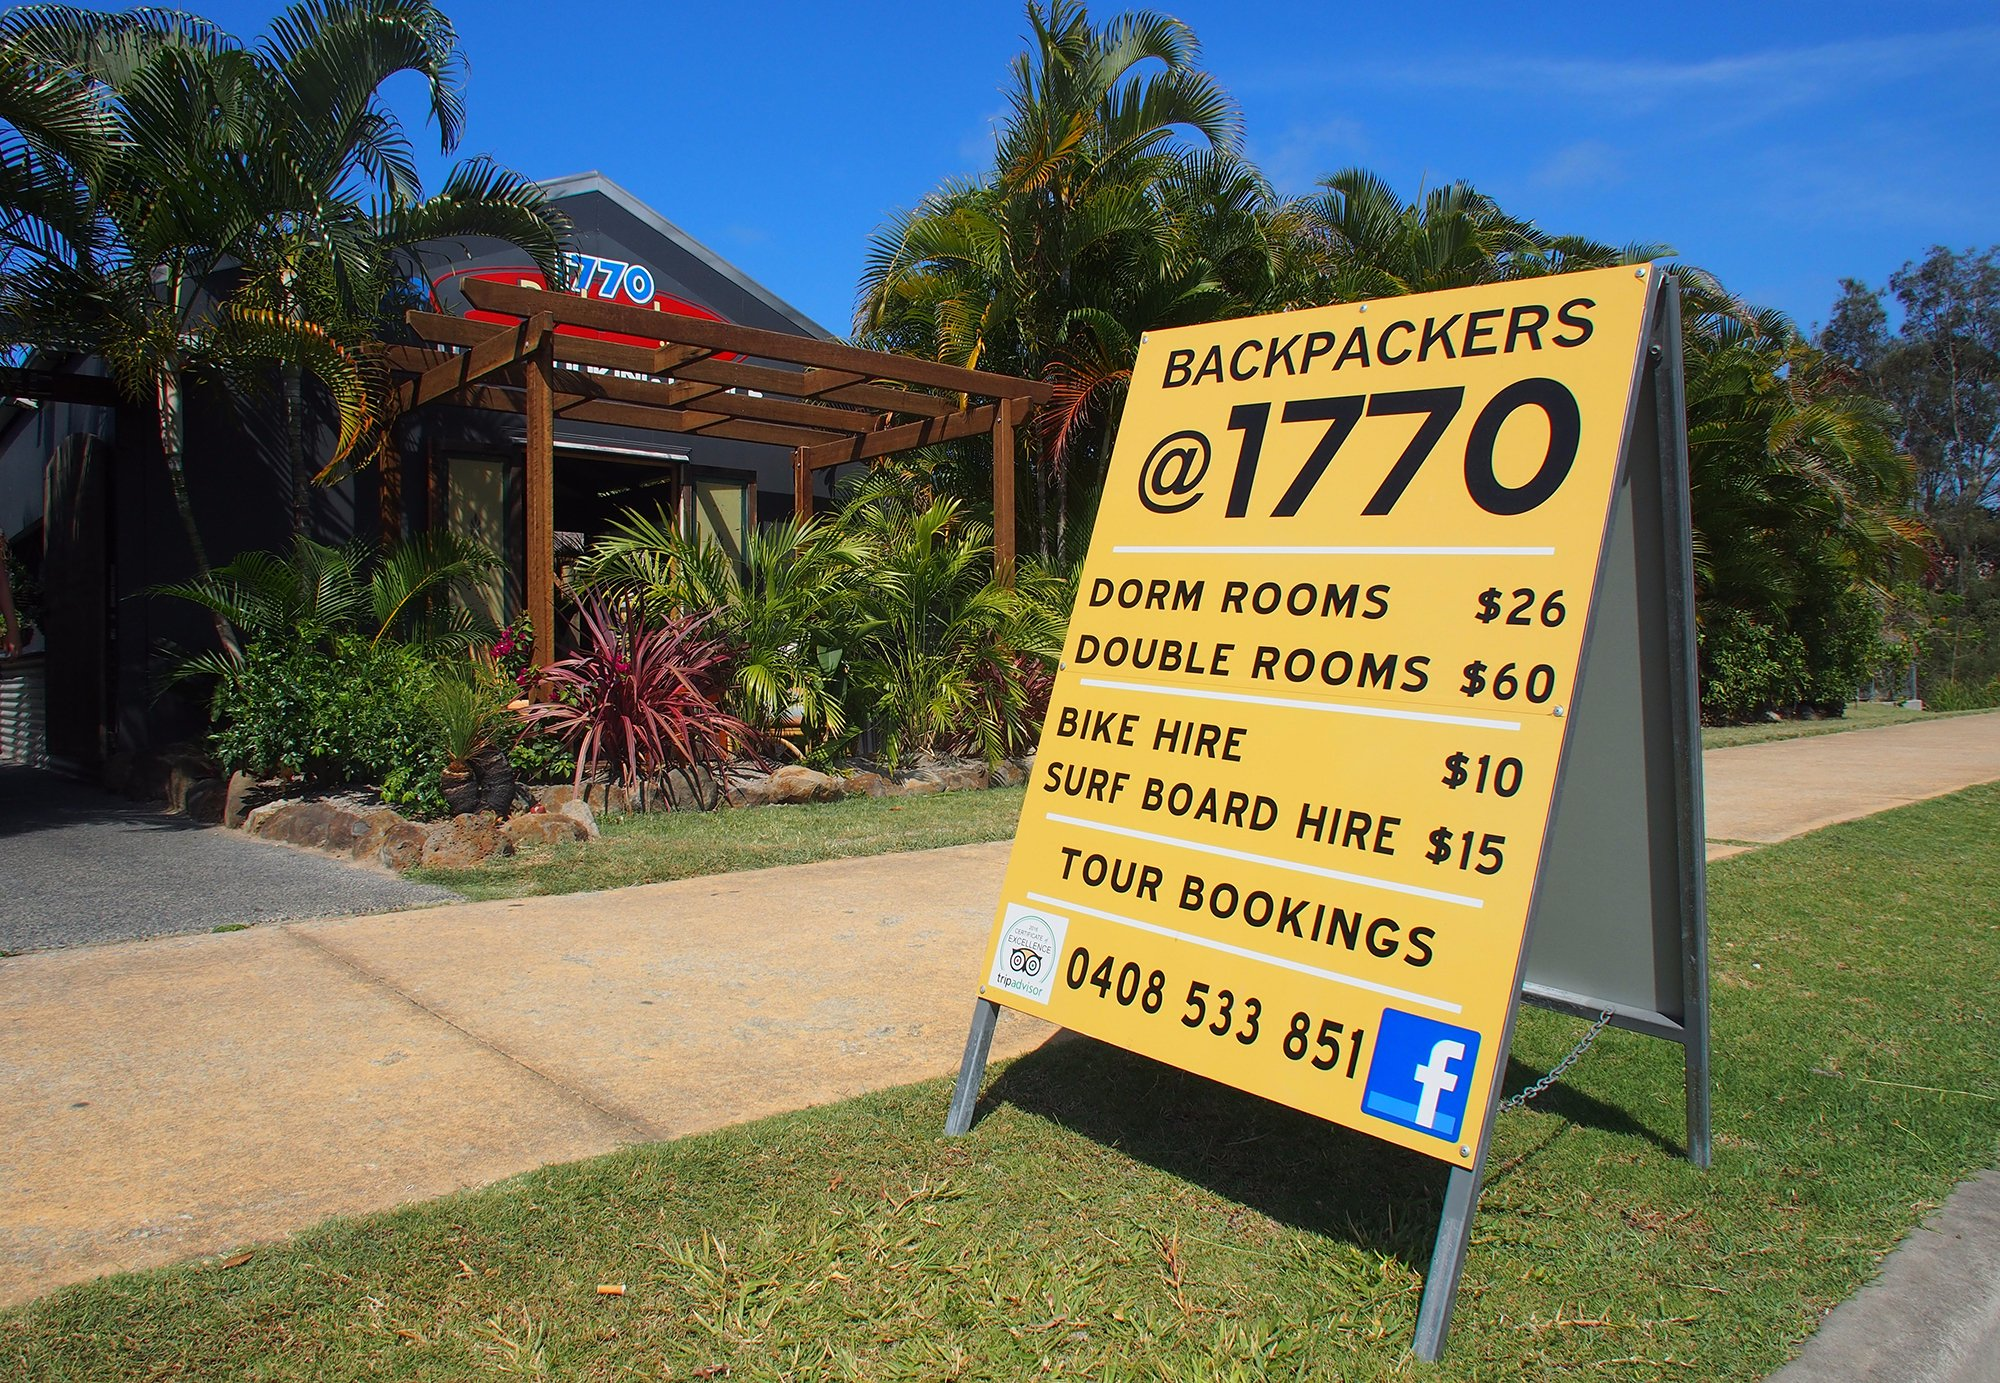 Backpackers @ 1770